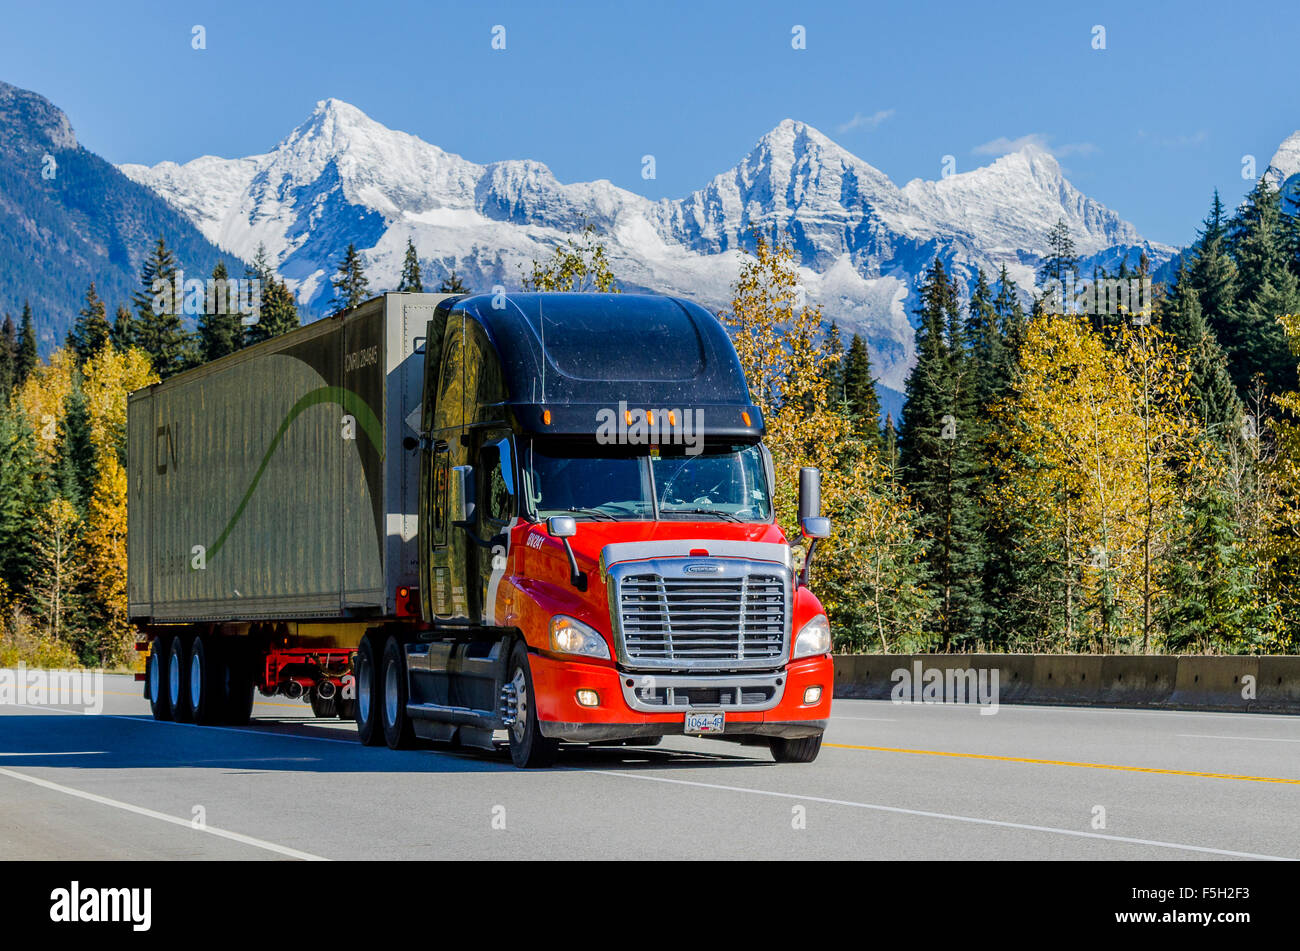 Truck on Trans Canada Highway near Rogers Pass, British Columbia, Canada - Stock Image